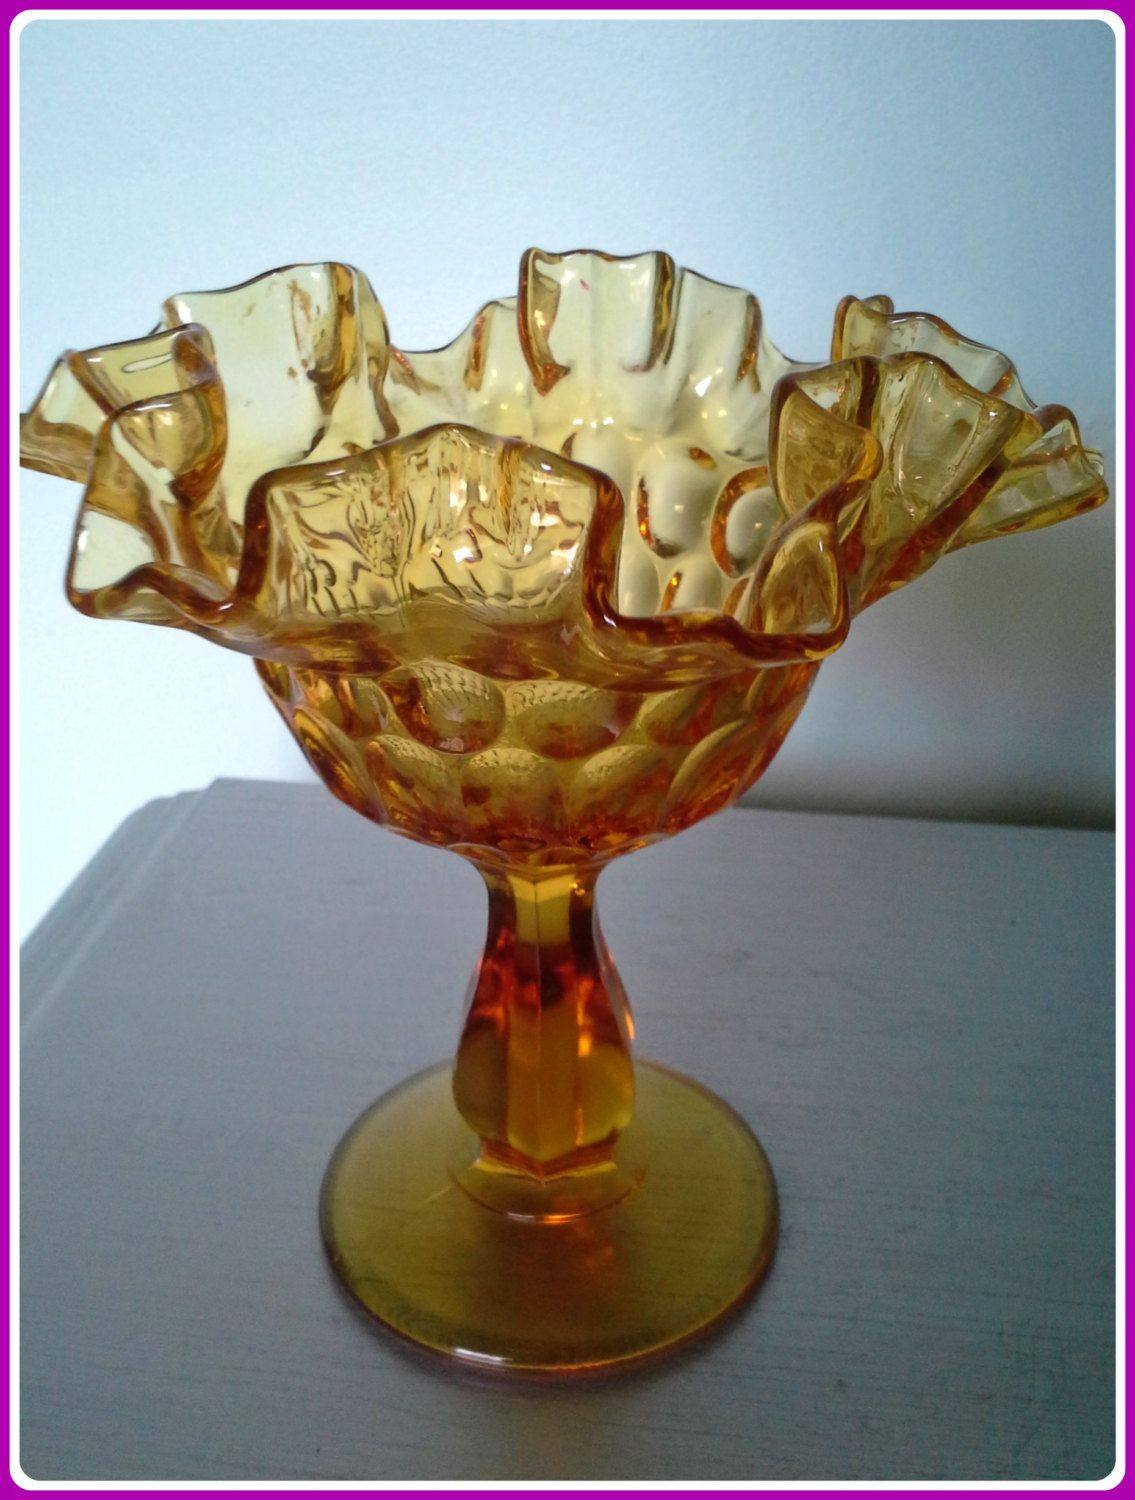 fenton fan vase of vintage compote ruffled amber glass pedestal vintage amber glass regarding vintage compote ruffled amber glass pedestal vintage amber glass footed candy dish by fenton mid century fenton glass compote amber